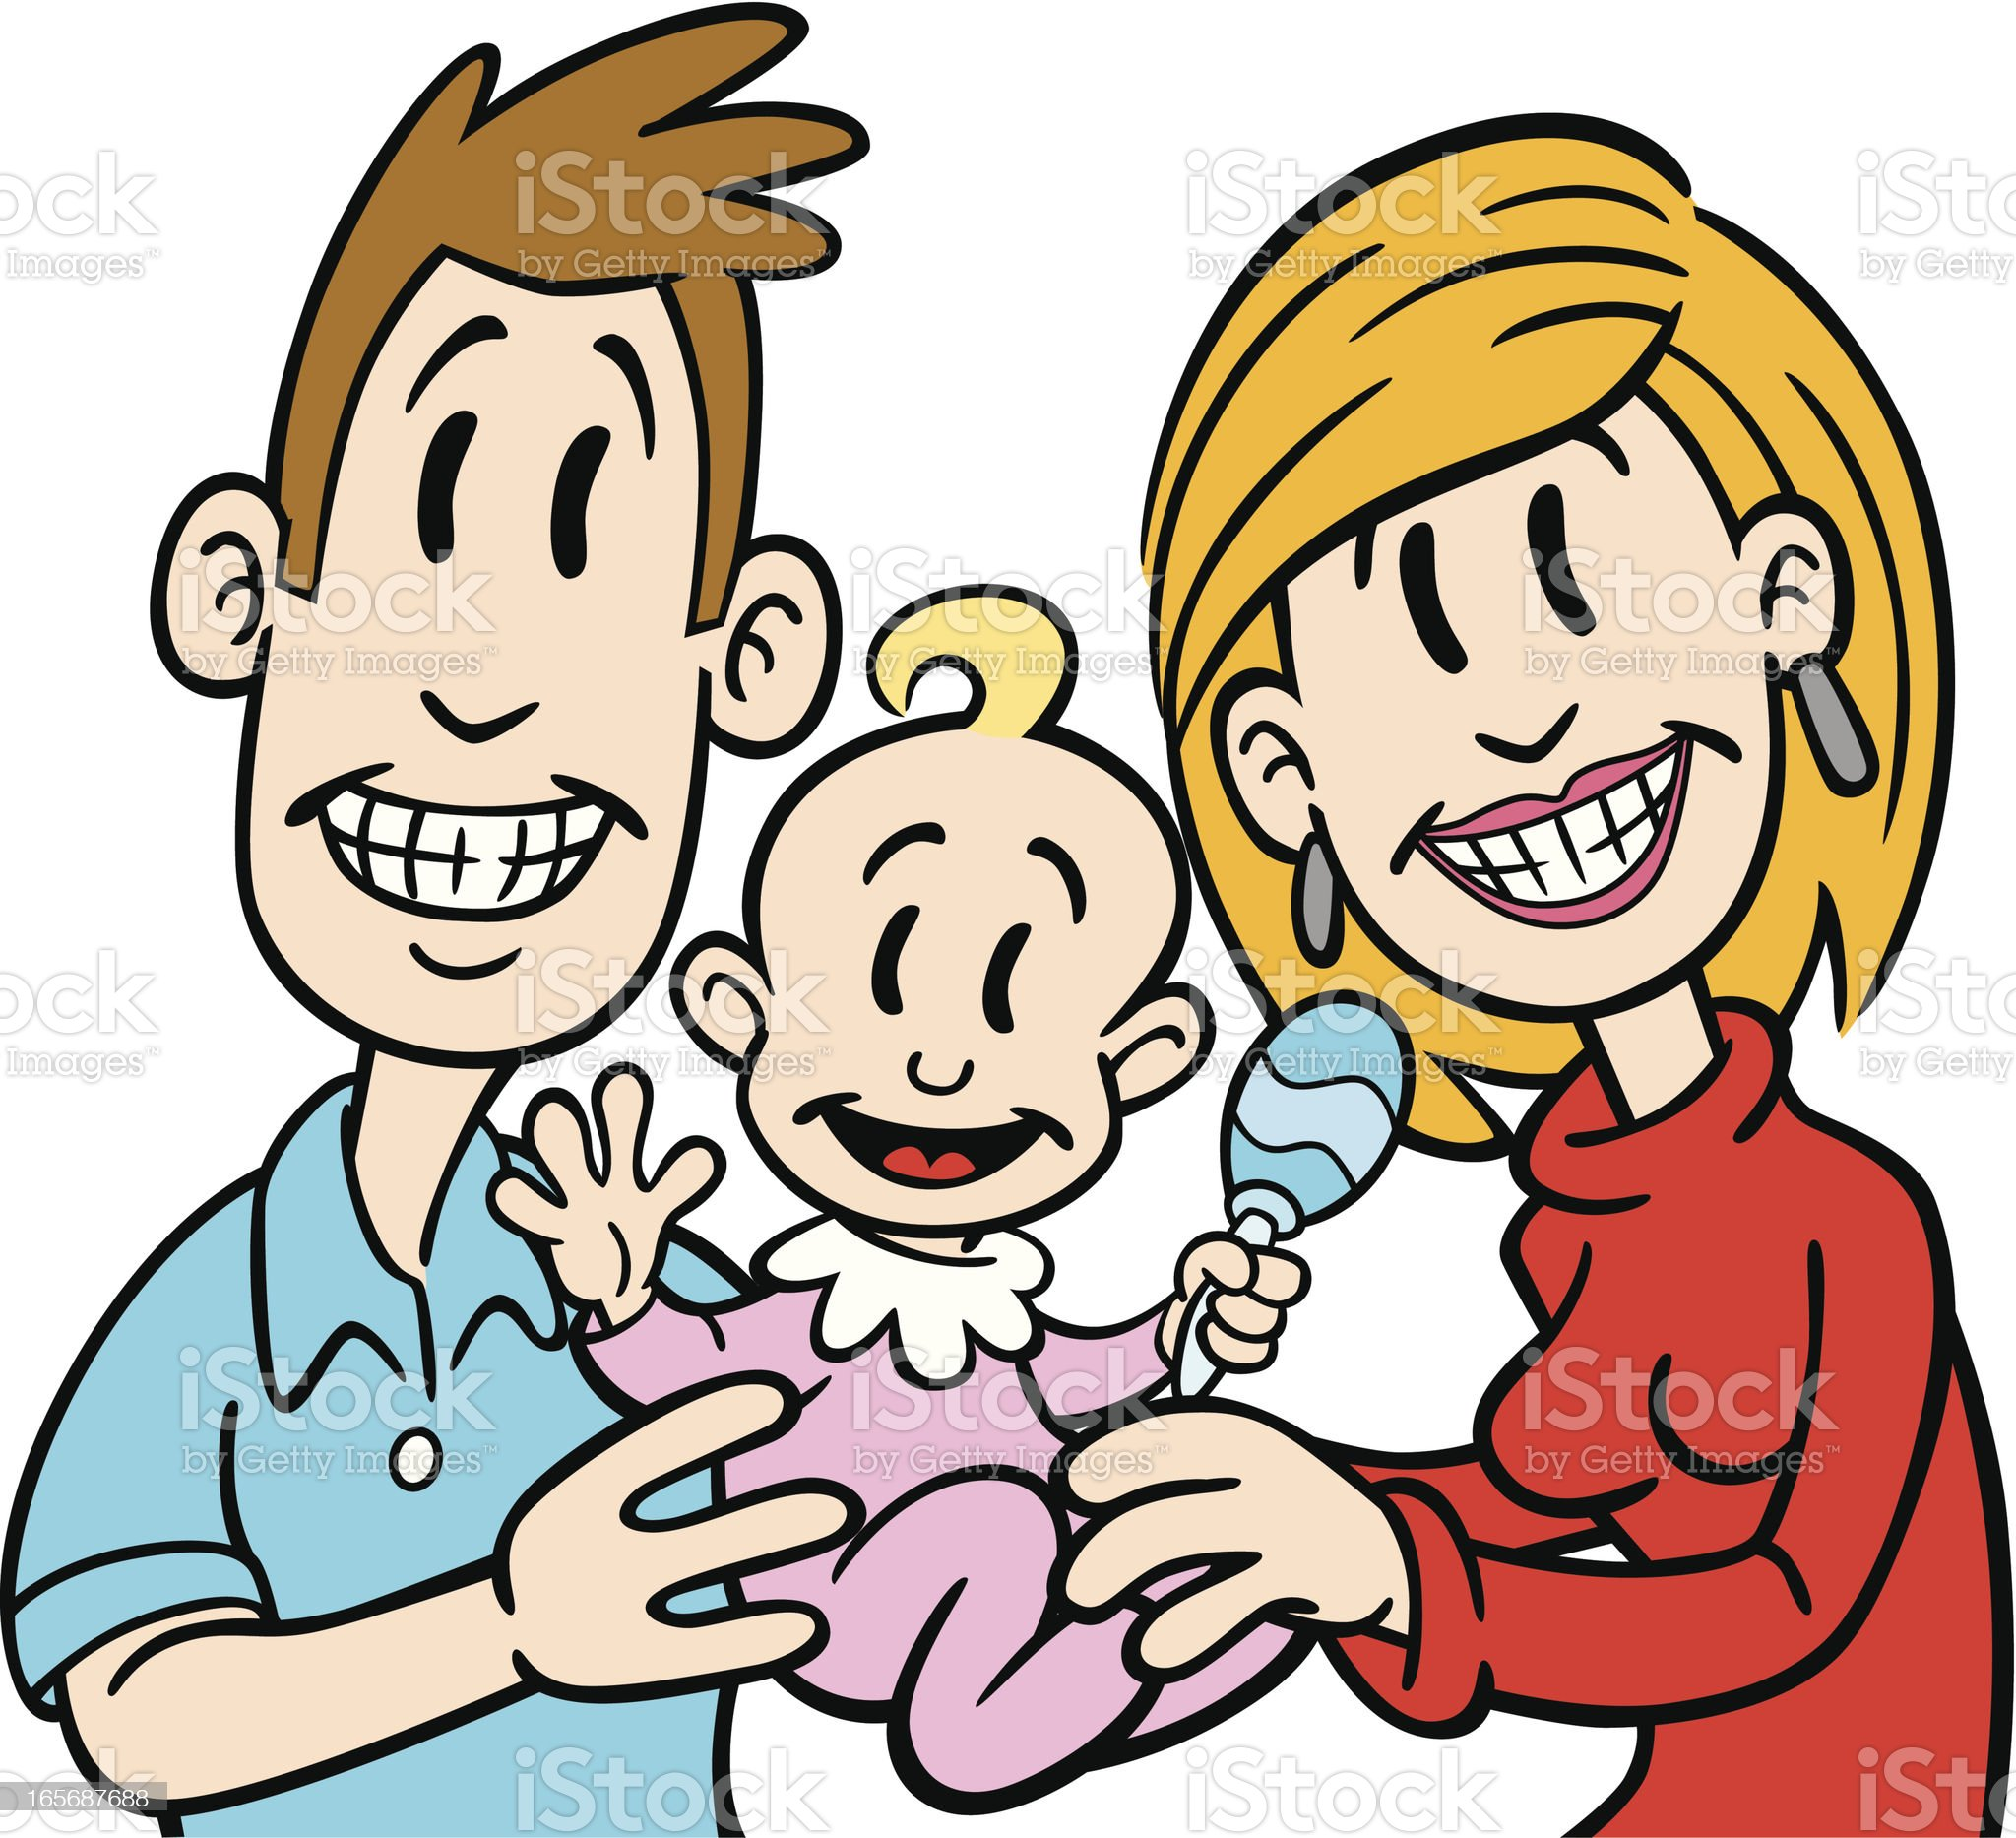 Happy Family With Baby royalty-free stock vector art